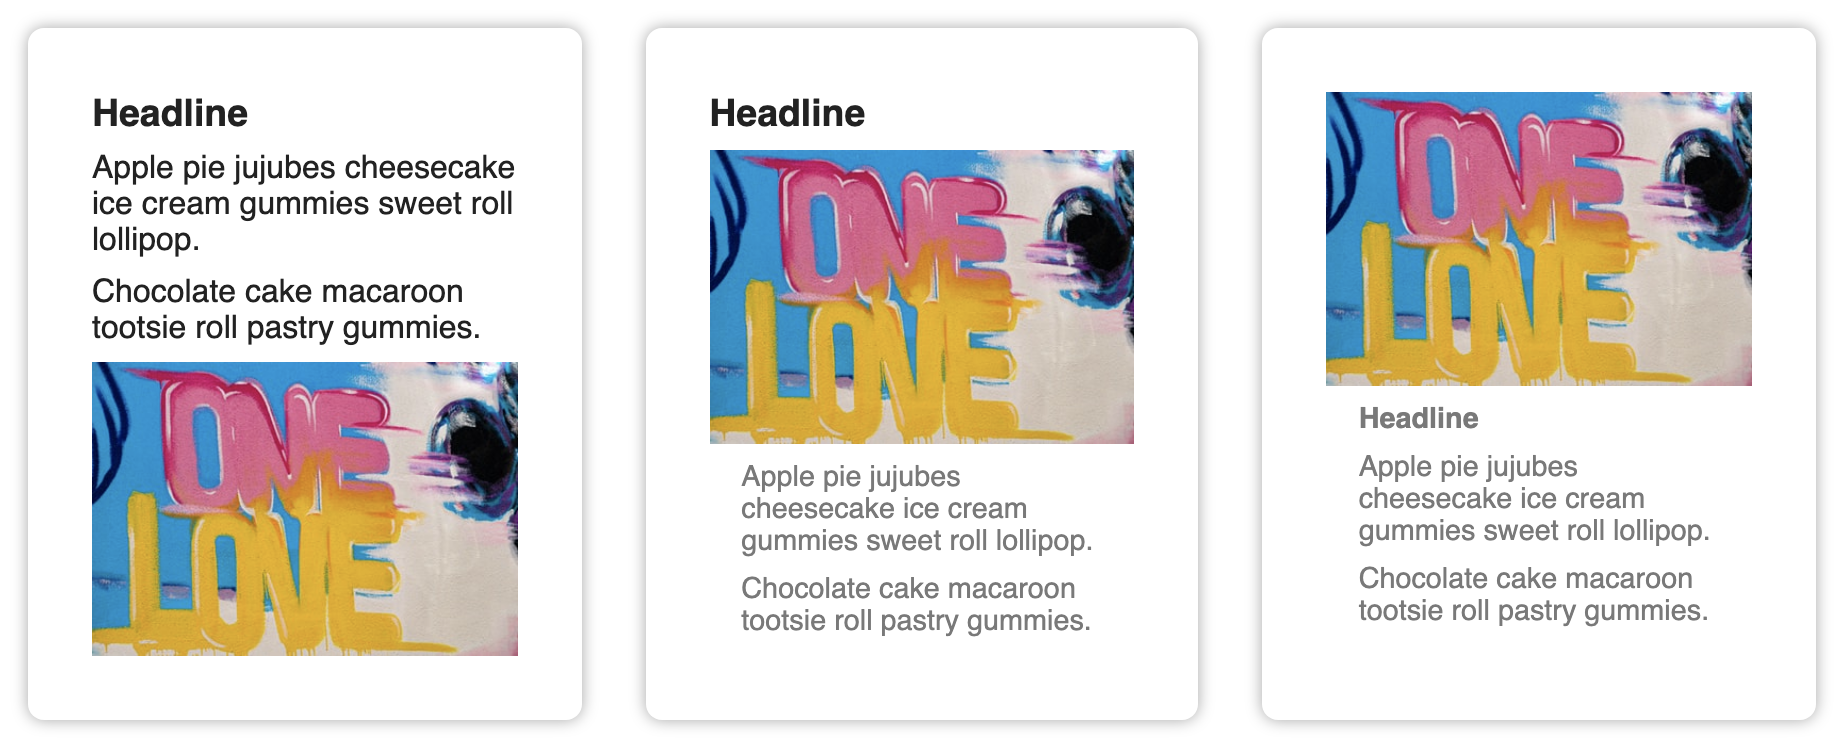 Three card layouts including a headline, two paragraphs, and an image. Any content that follows an image gains the style described below.